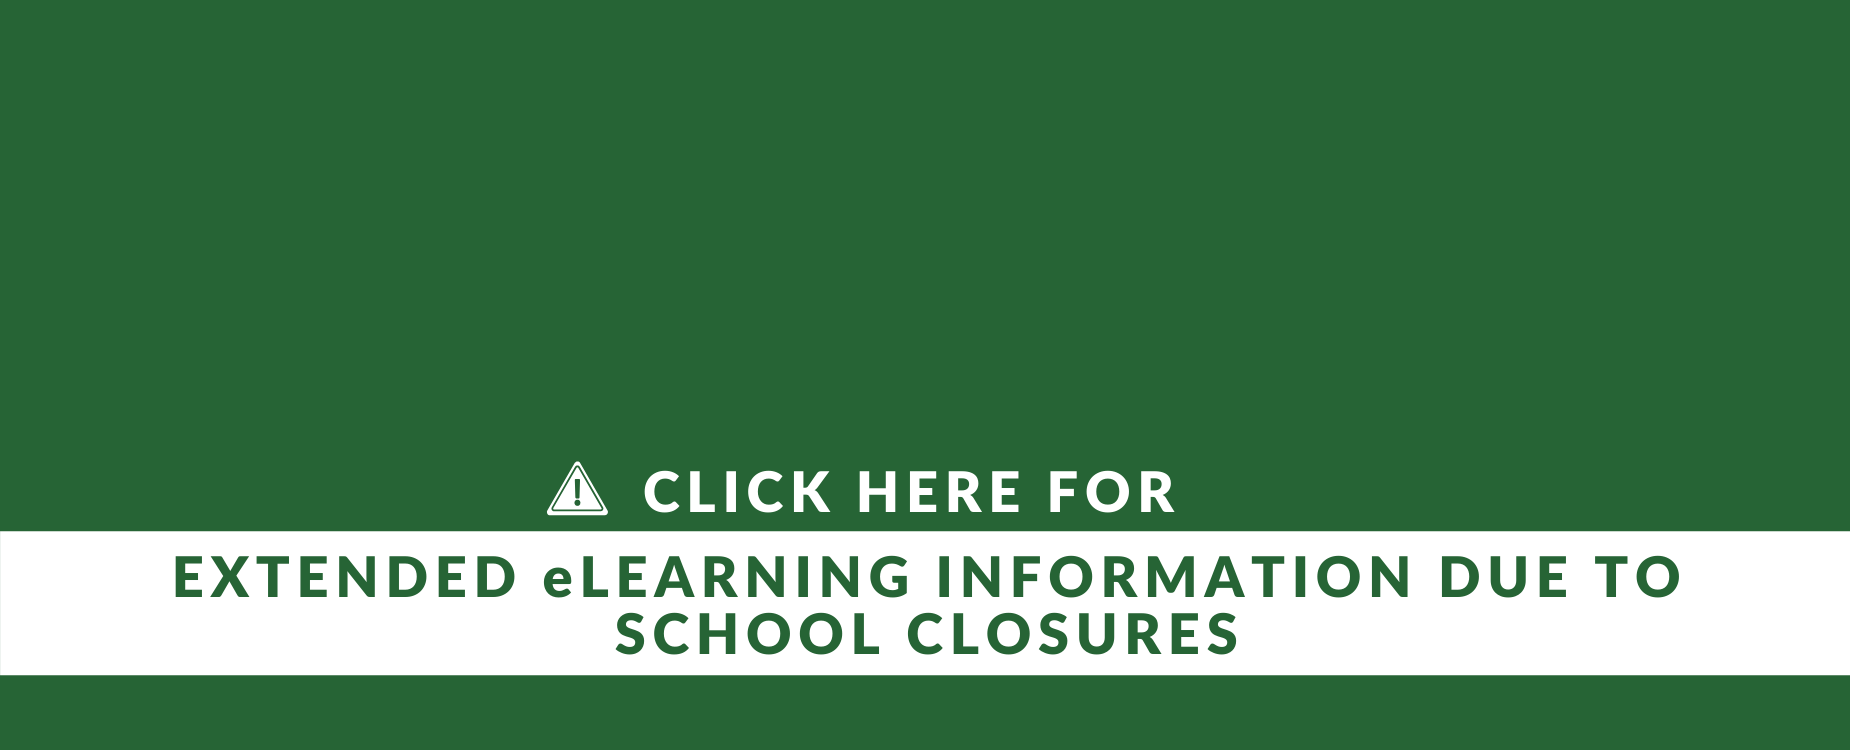 Click here for EXTENDED eLEARNING INFORMATION DUE TO SCHOOL CLOSURES